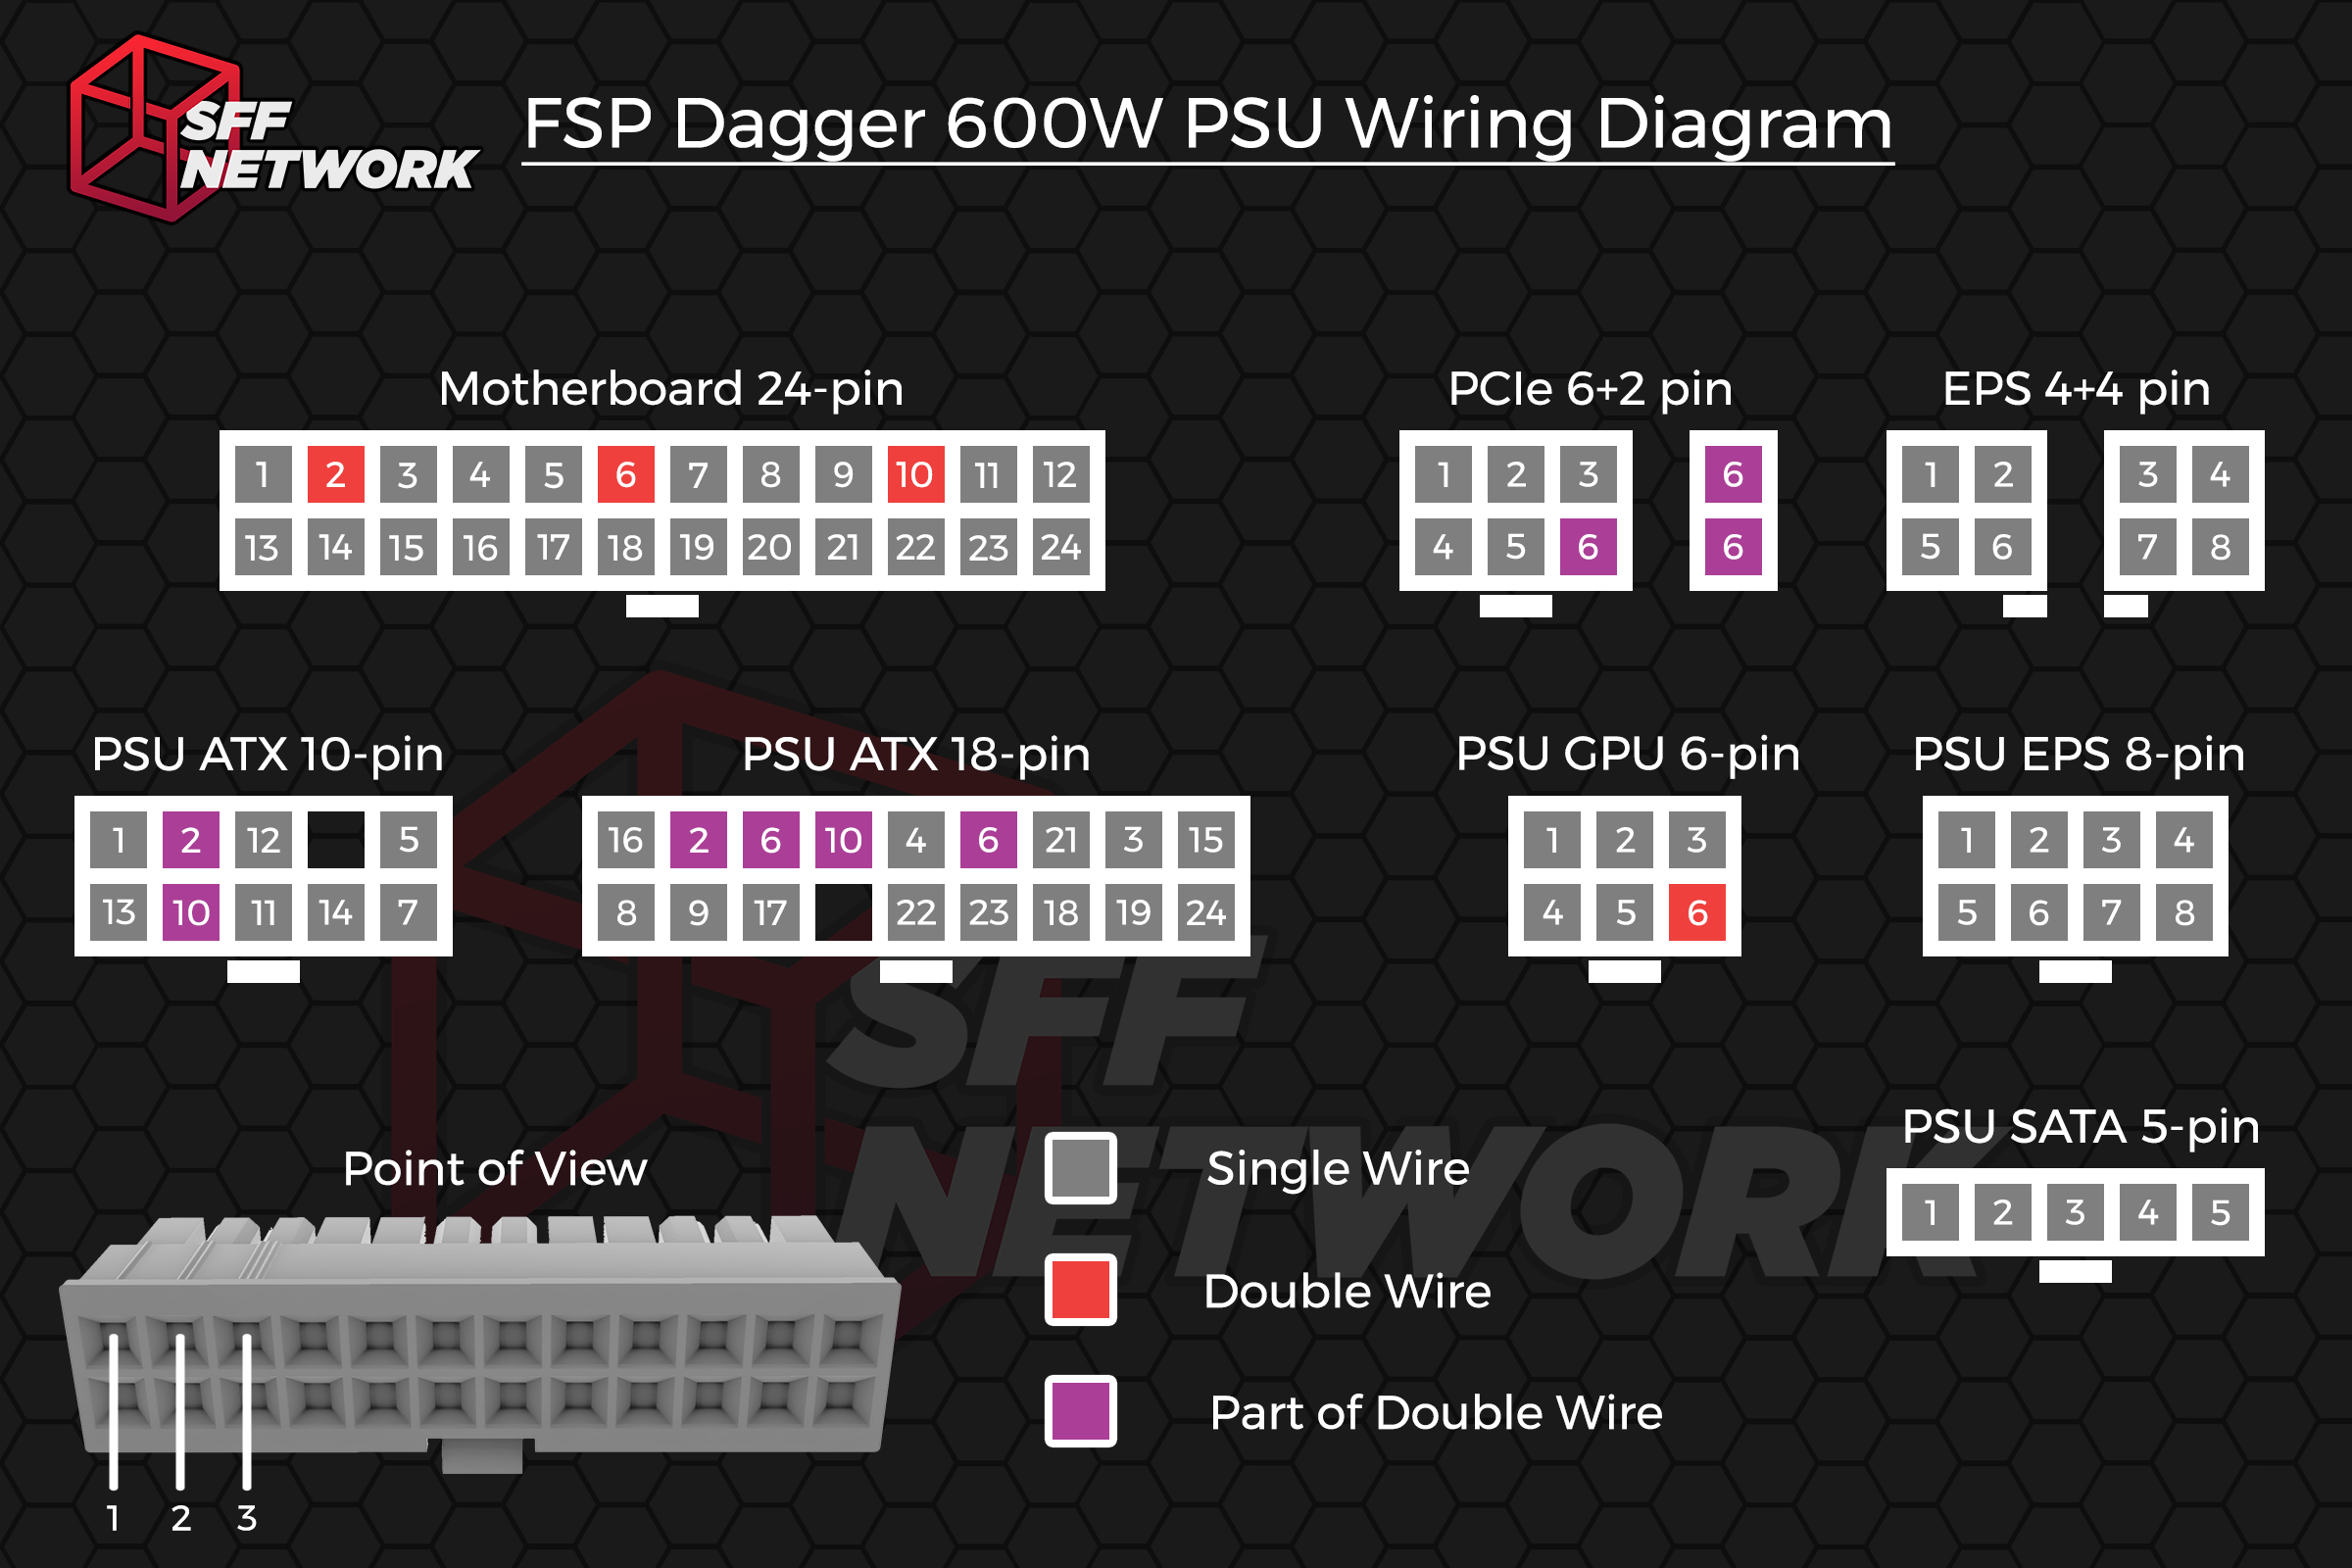 Fsp Dagger 600w A Stab In The Dark Sff Network Sff